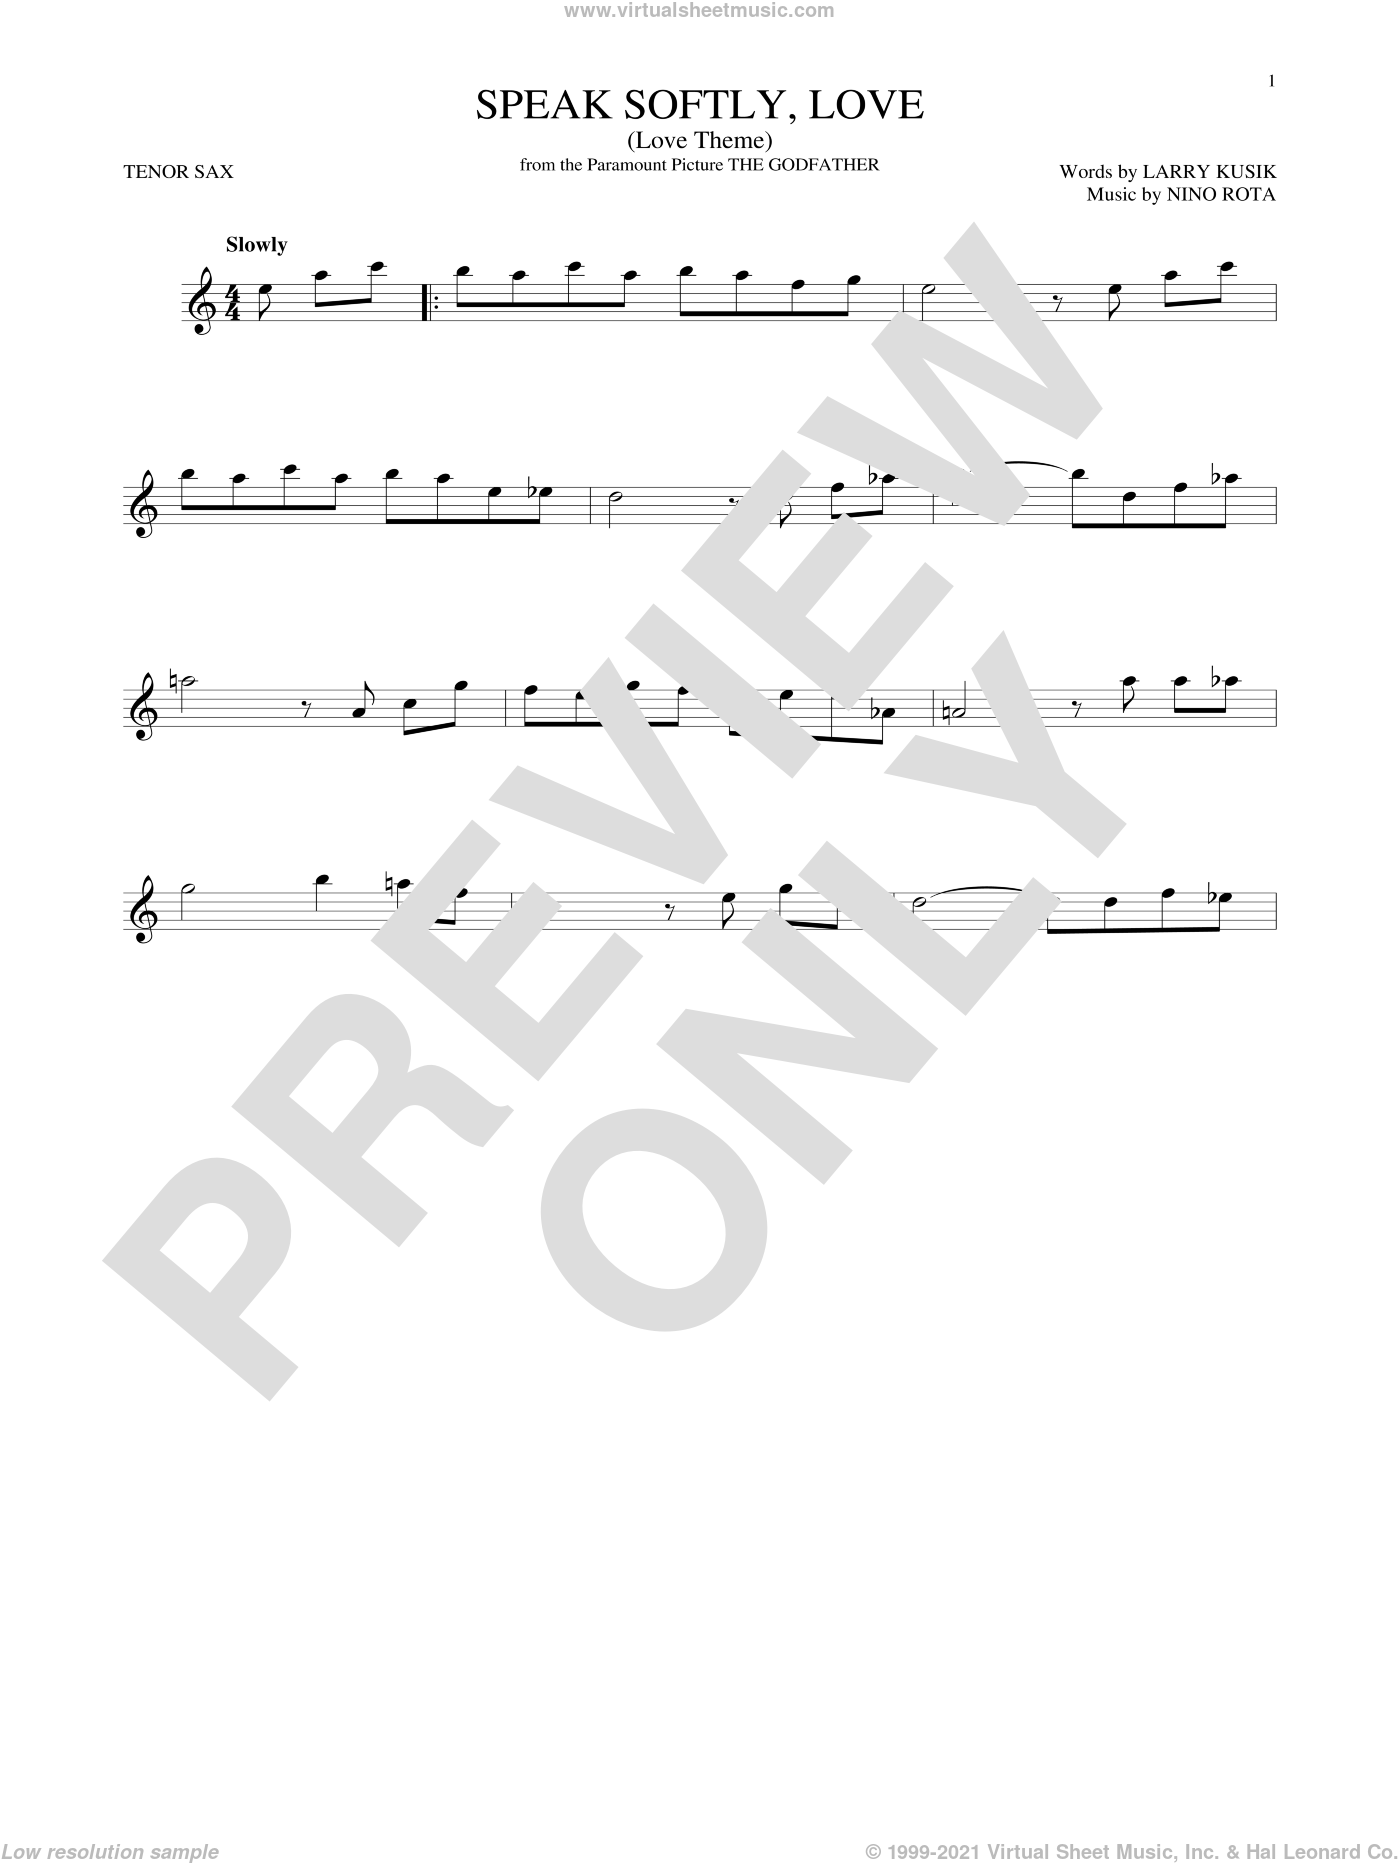 Speak Softly, Love (Love Theme) sheet music for tenor saxophone solo ( Sax) by Nino Rota, Andy Williams and Larry Kusik. Score Image Preview.